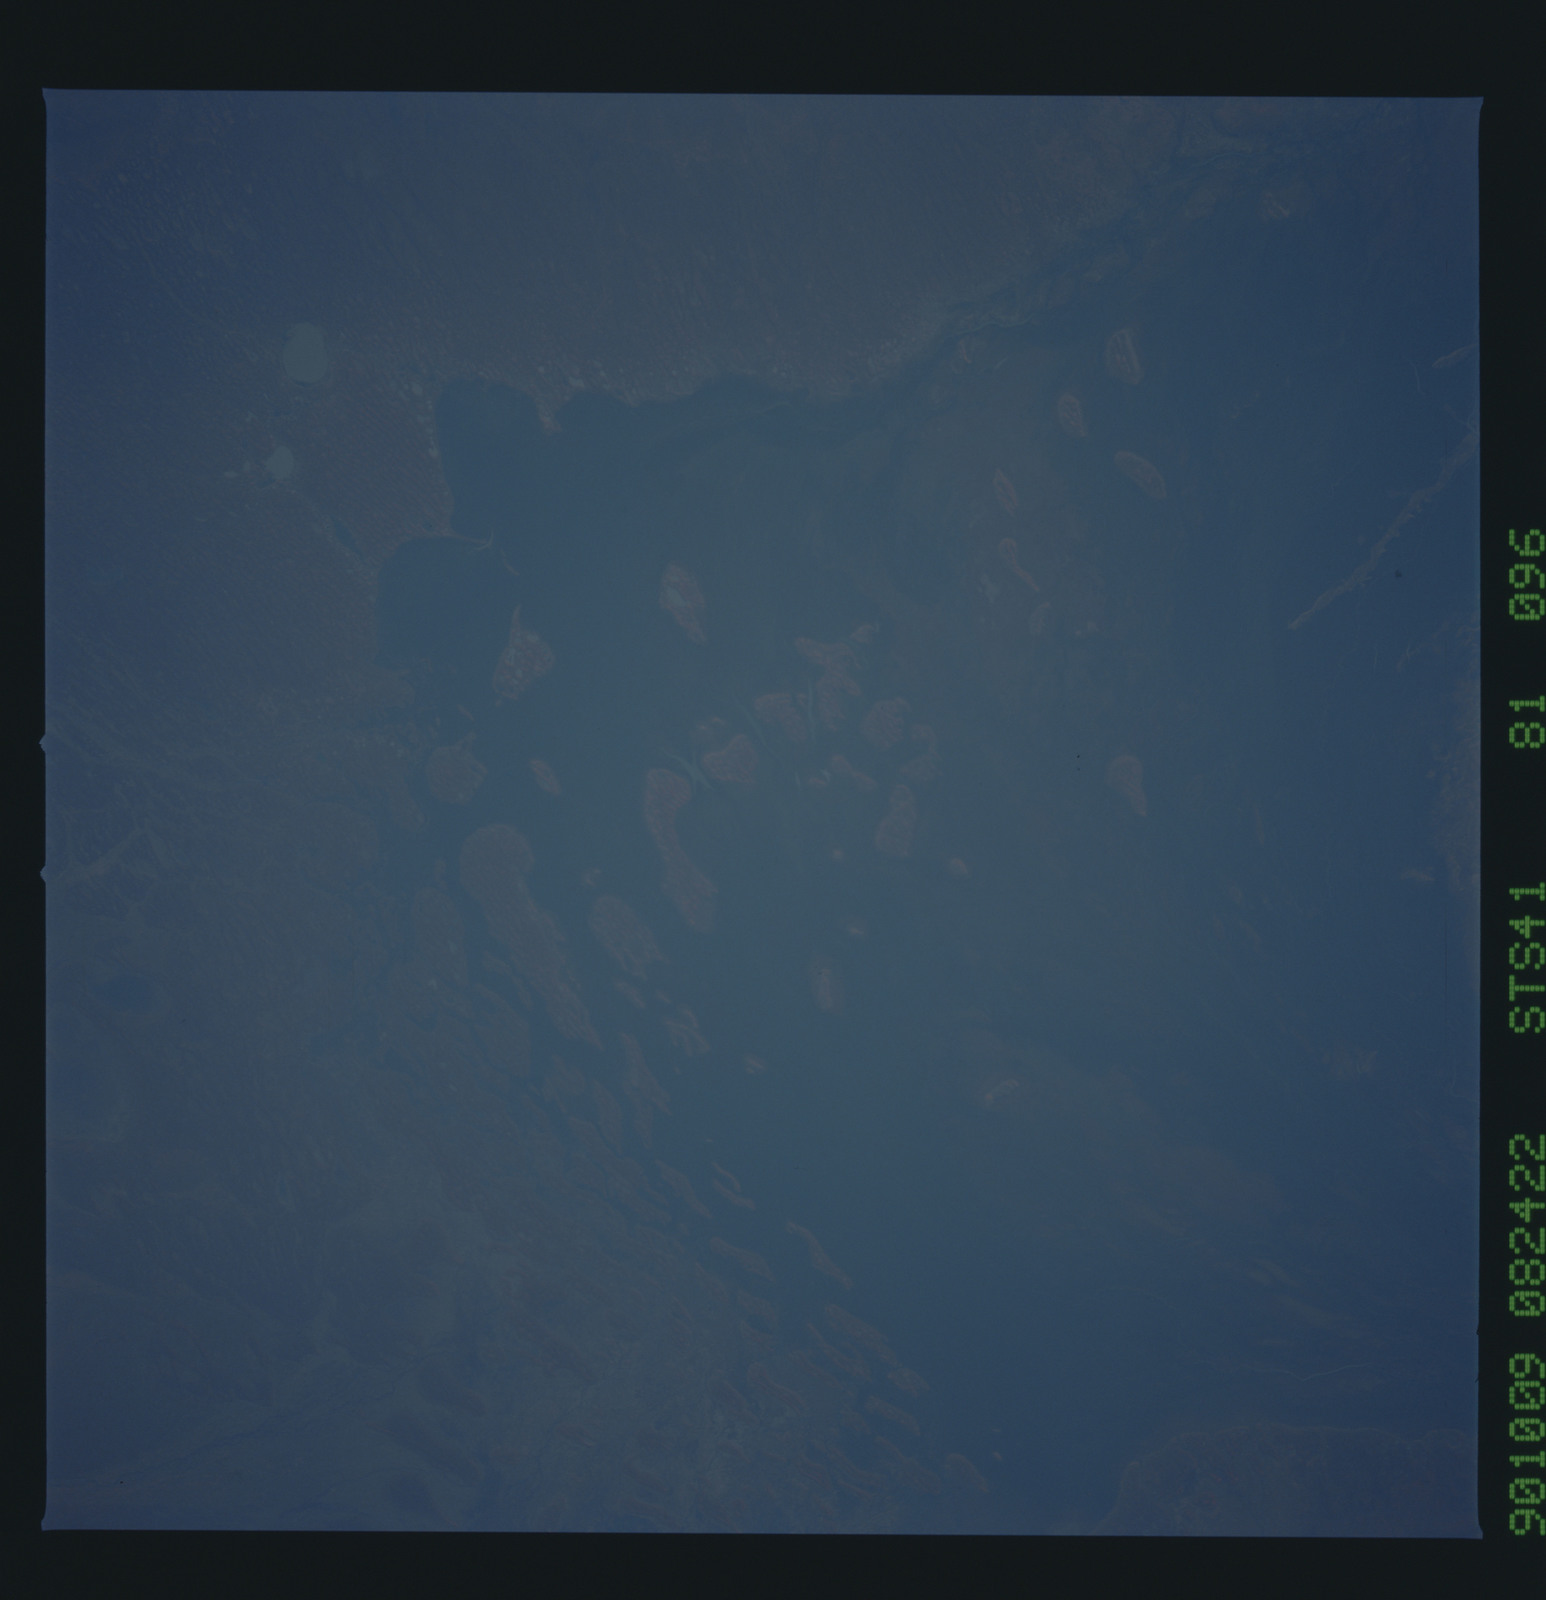 S41-81-096 - STS-041 - STS-41 earth observations